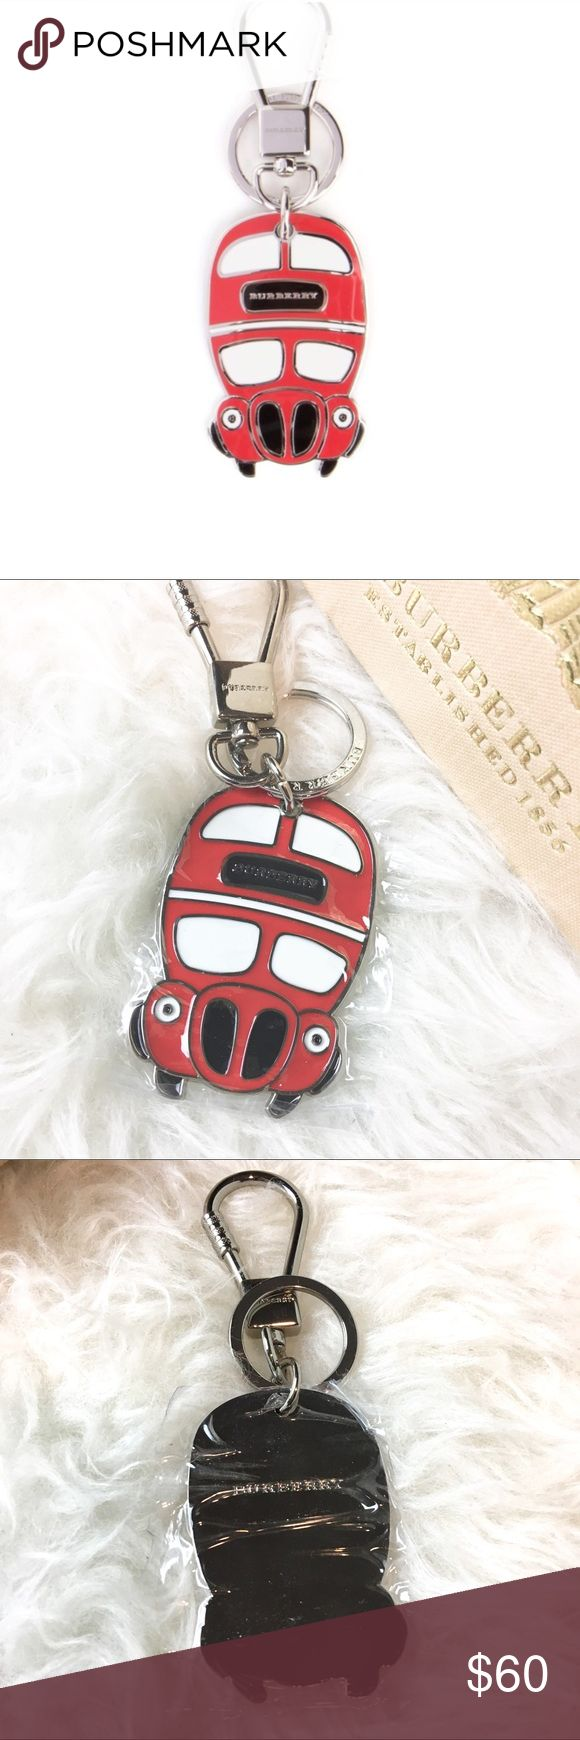 Burberry Keychain Double Decker Bus PRICE FIRM!! NO LOWBALLERS! New without tag. Burberry double decker bus from London. Adorable design! Place it in your bag or keys. Includes box. Burberry Accessories Key & Card Holders